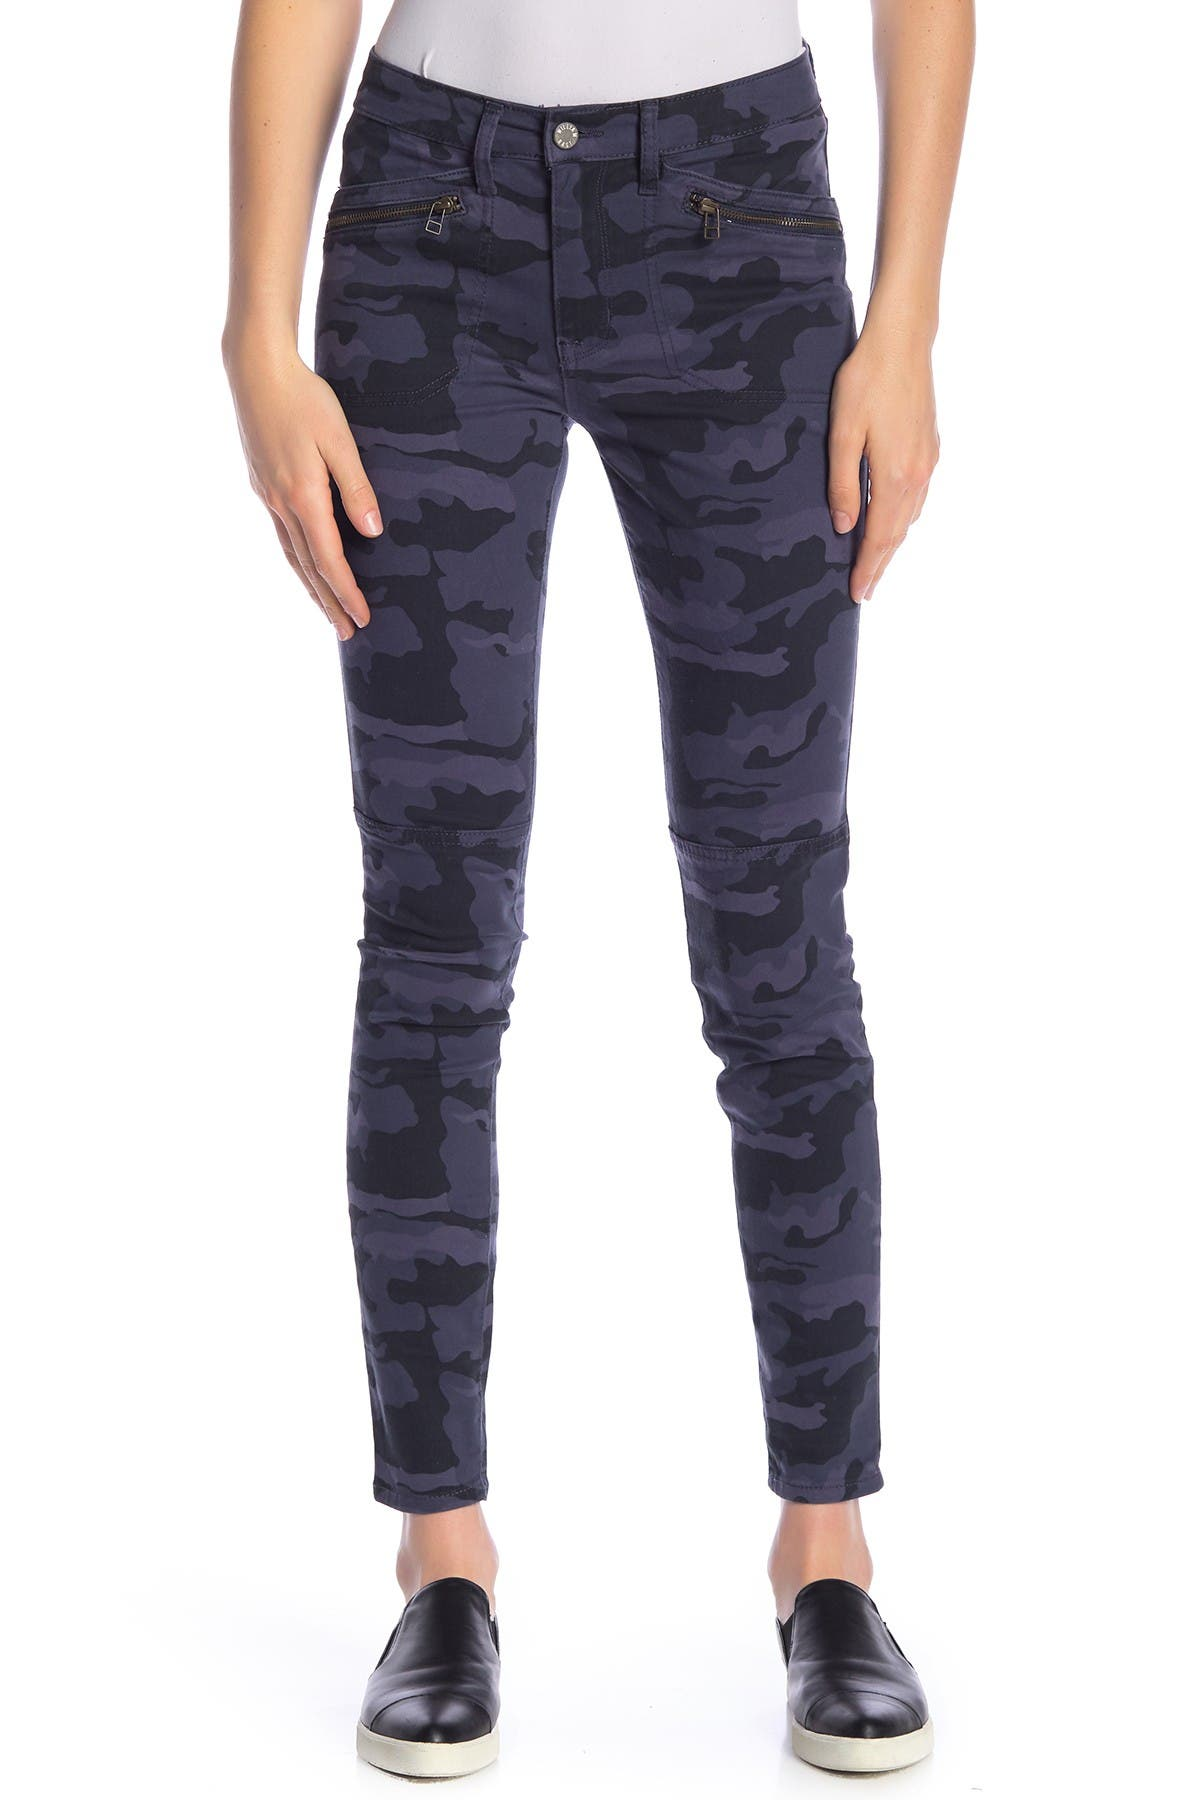 Image of William Rast Jane Camo Zip Flap Skinny Jeans